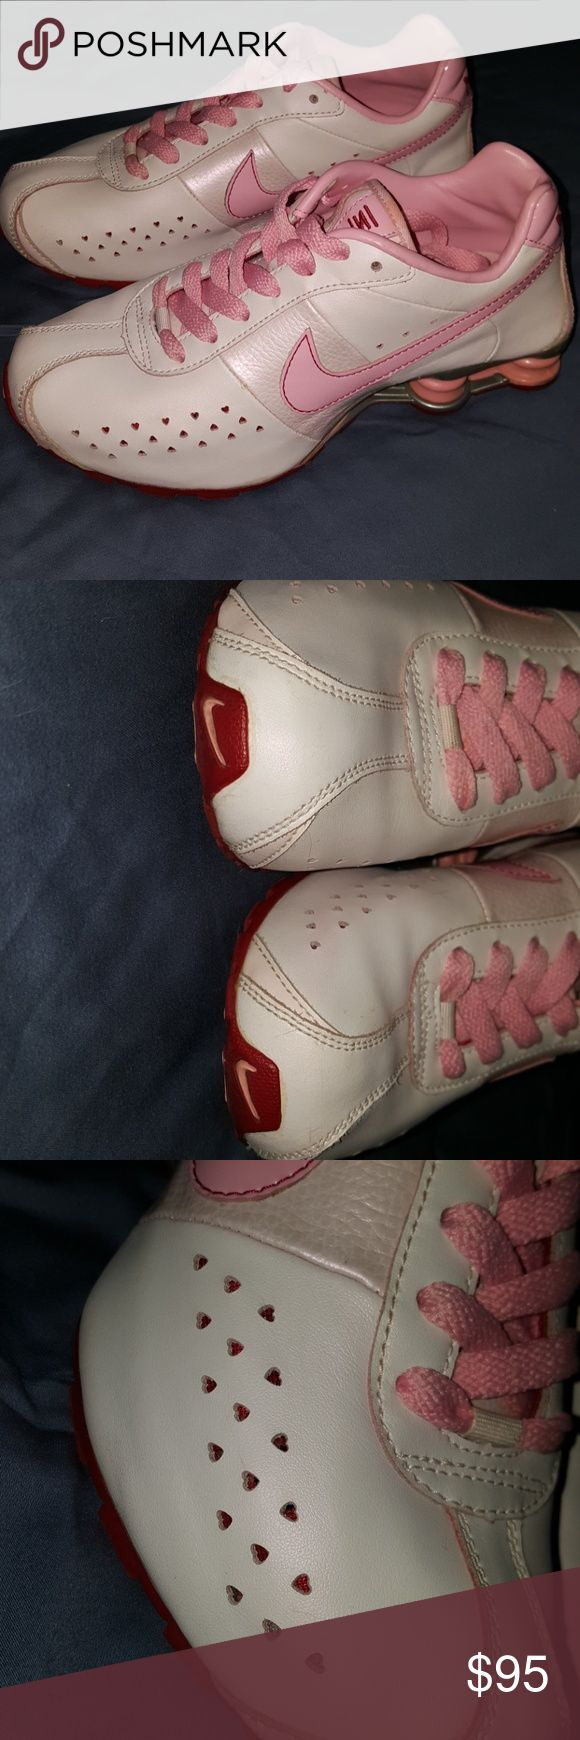 Vintage Nike Valentine's Day Shox (Stil brand new) Like having stuff that no one else does?? Check out these Vintage Nike Valentine's Day Shox, still new in box (only worn 2x's) size 5.5 big kids, or 7 ladies. Not even broken in yet. The air holes are hearts- they are light pink, opaque pink, & red. Orig pd $129.00.. I bought these shoes 14 years ago & have only worn them twice... I couldnt get comfy in them (Im an Air-Max girl) but was too in love w/them to get rid of. Now that I've broken…